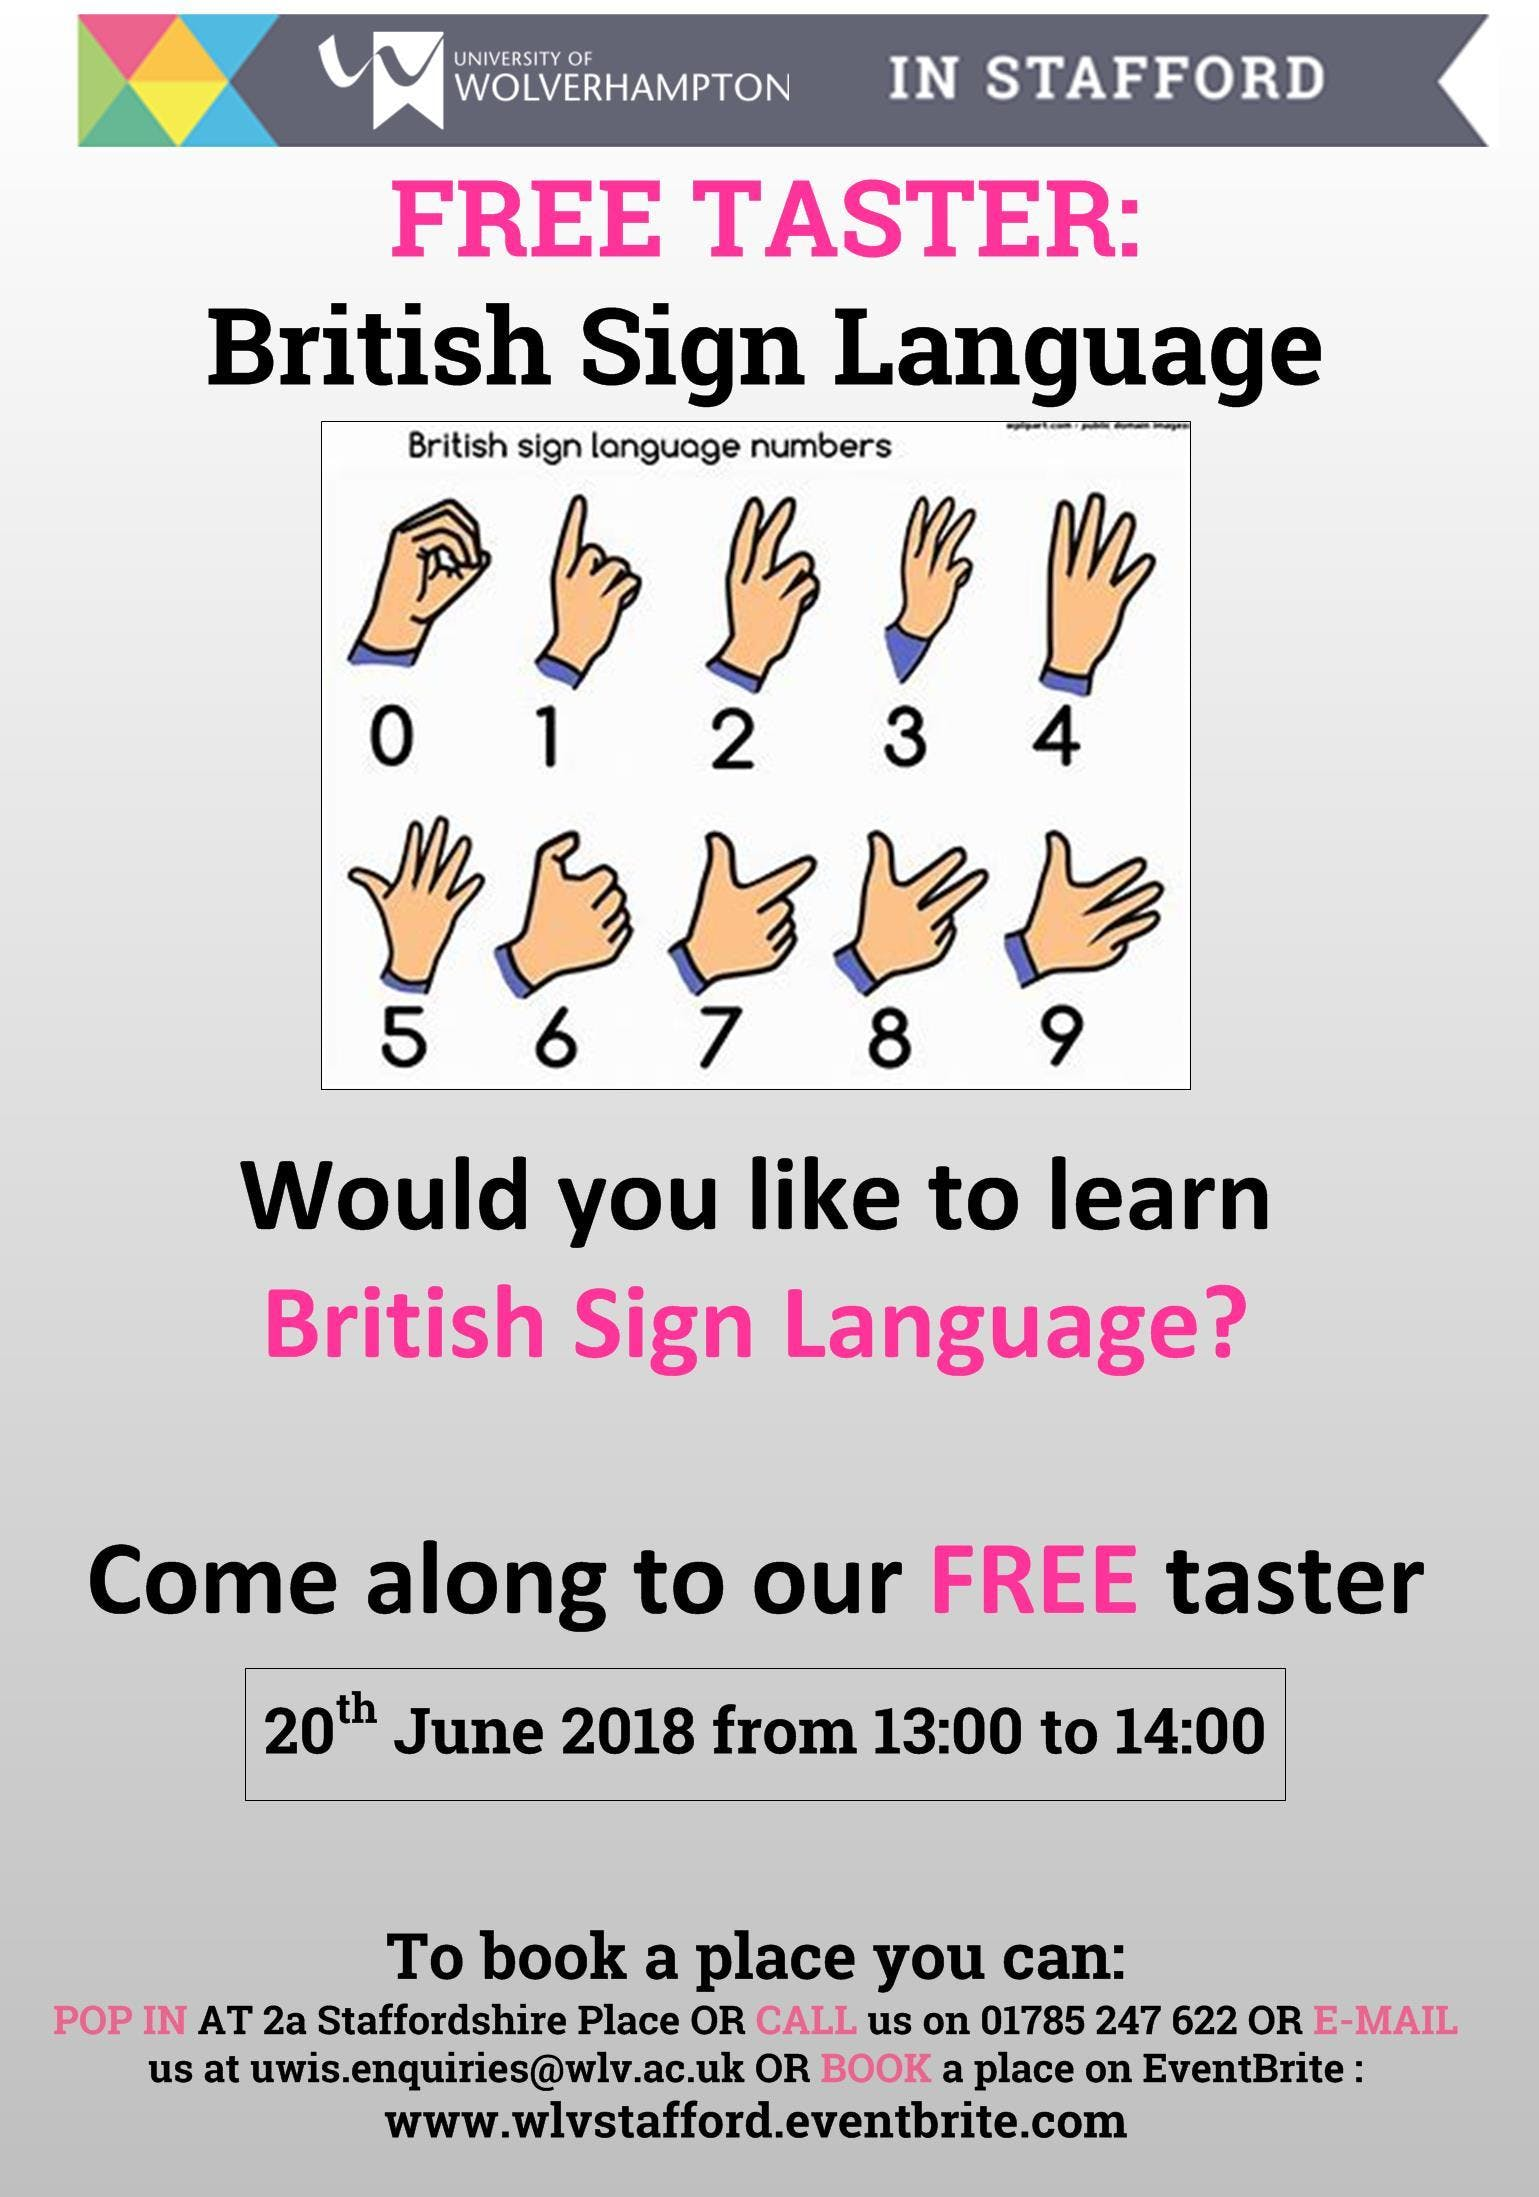 FREE DAYTIME TASTER - Learn British Sign Language